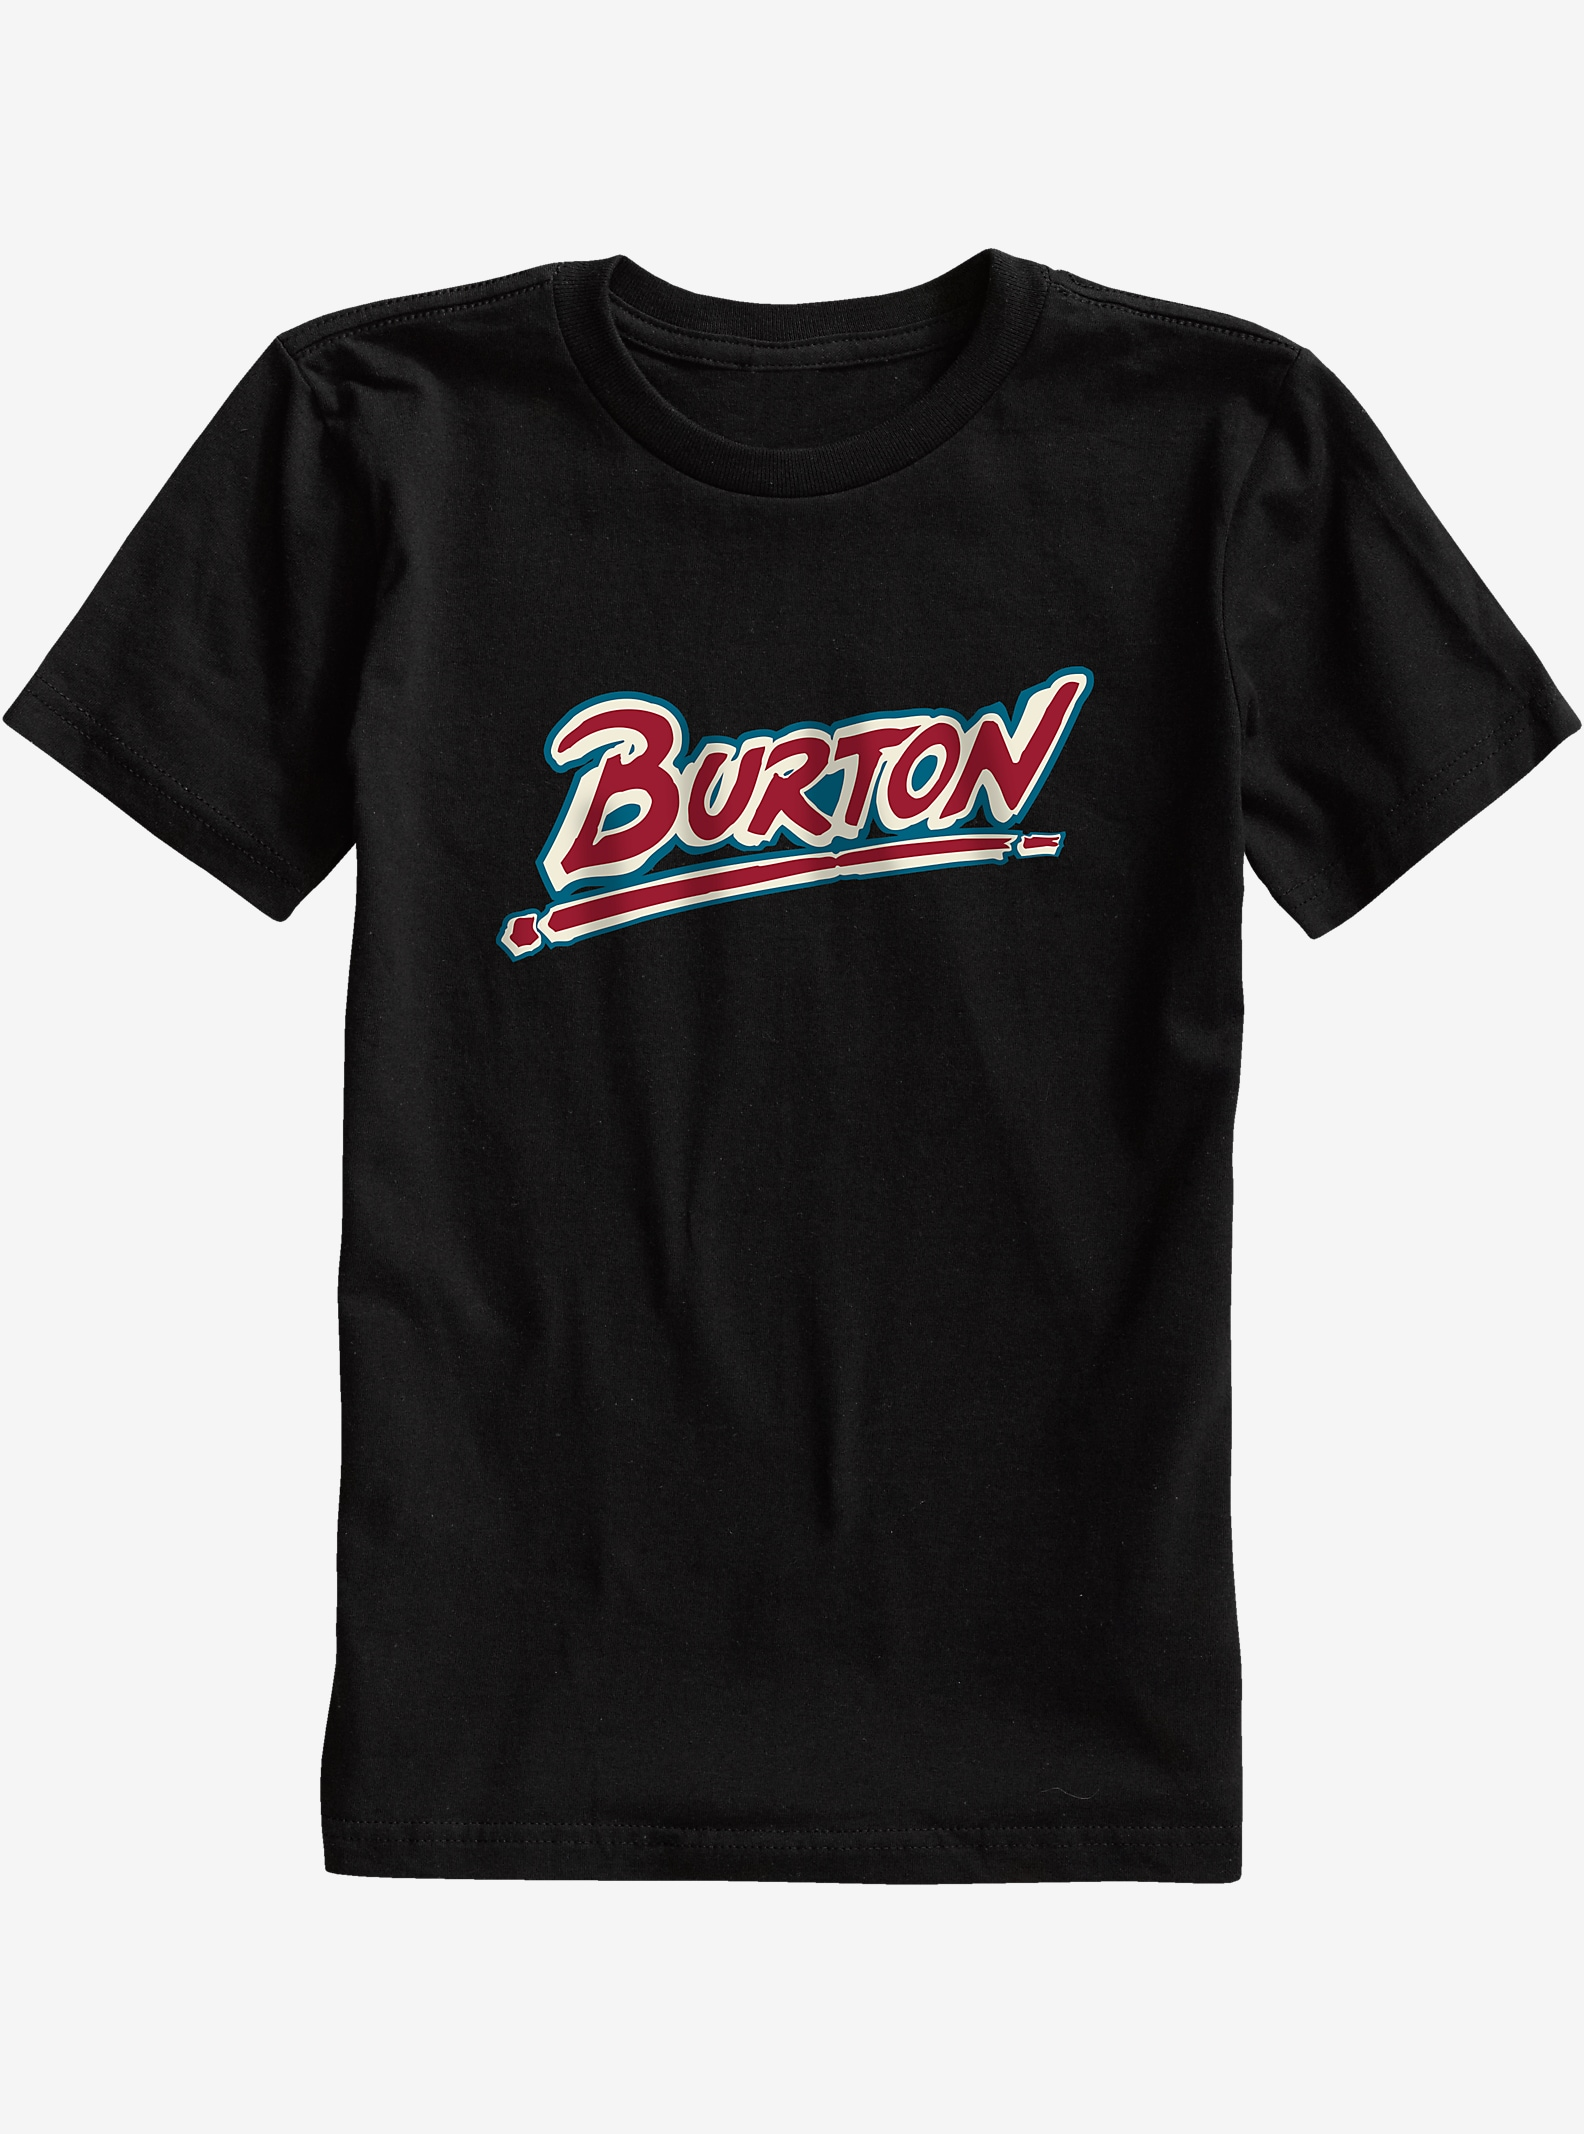 Burton Boys' Big Up Short Sleeve T Shirt shown in True Black